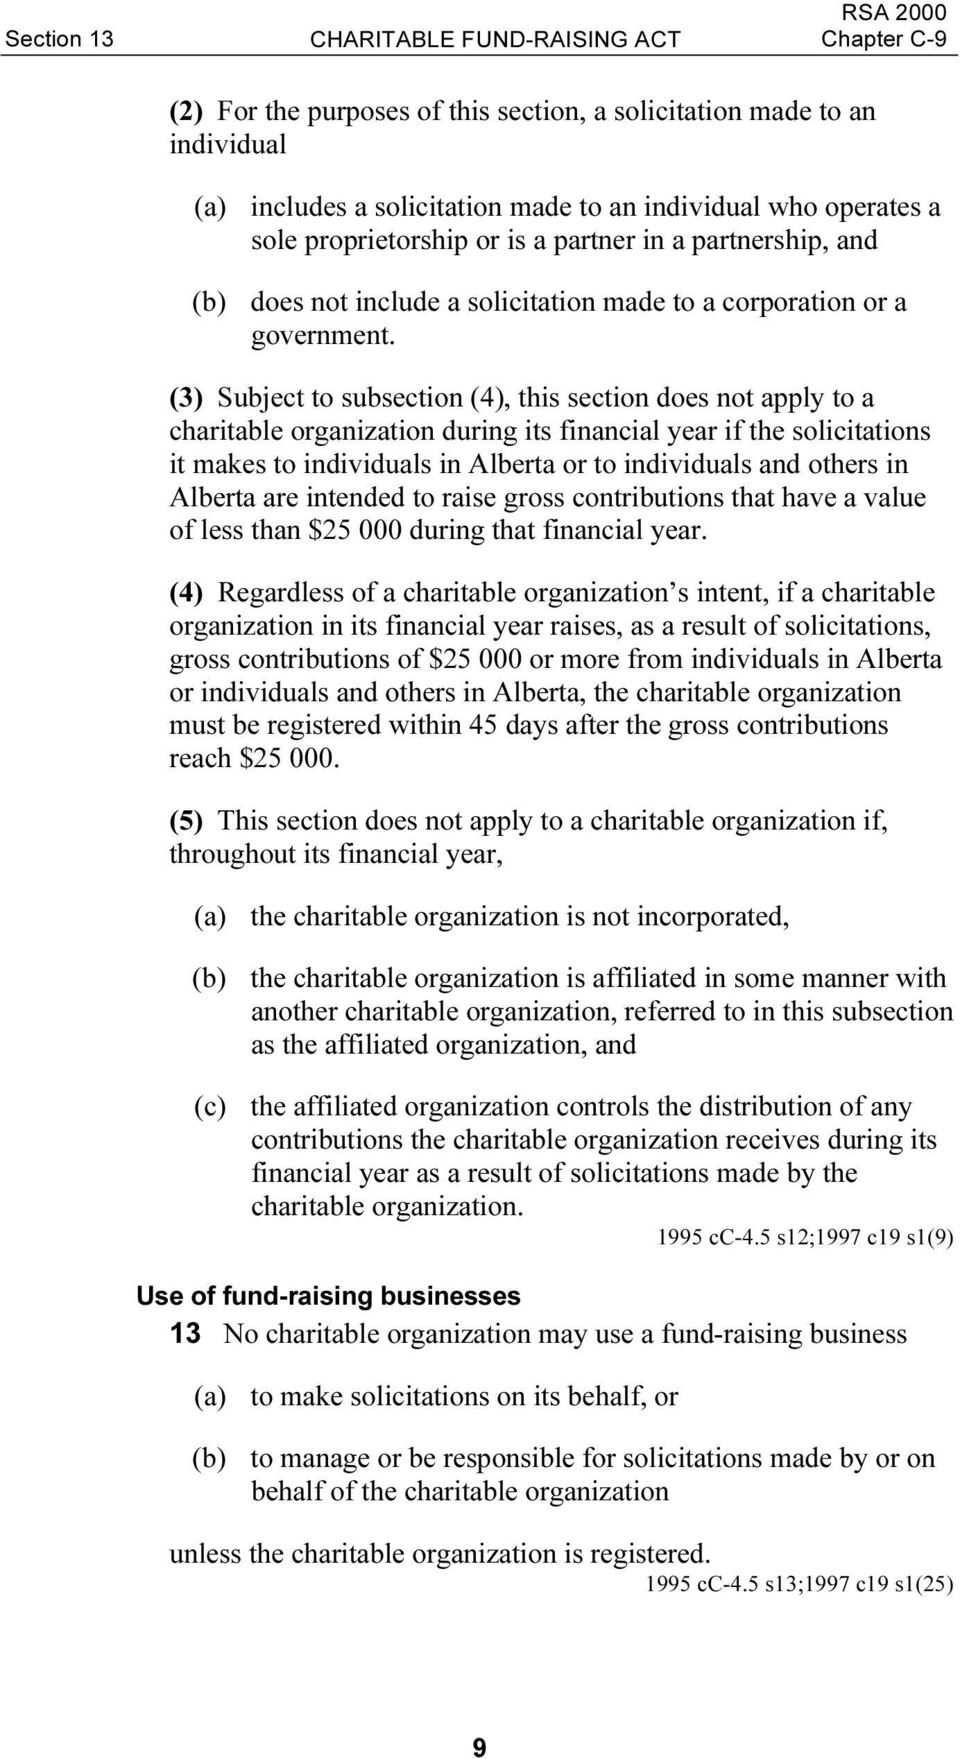 (3) Subject to subsection (4), this section does not apply to a charitable organization during its financial year if the solicitations it makes to individuals in Alberta or to individuals and others